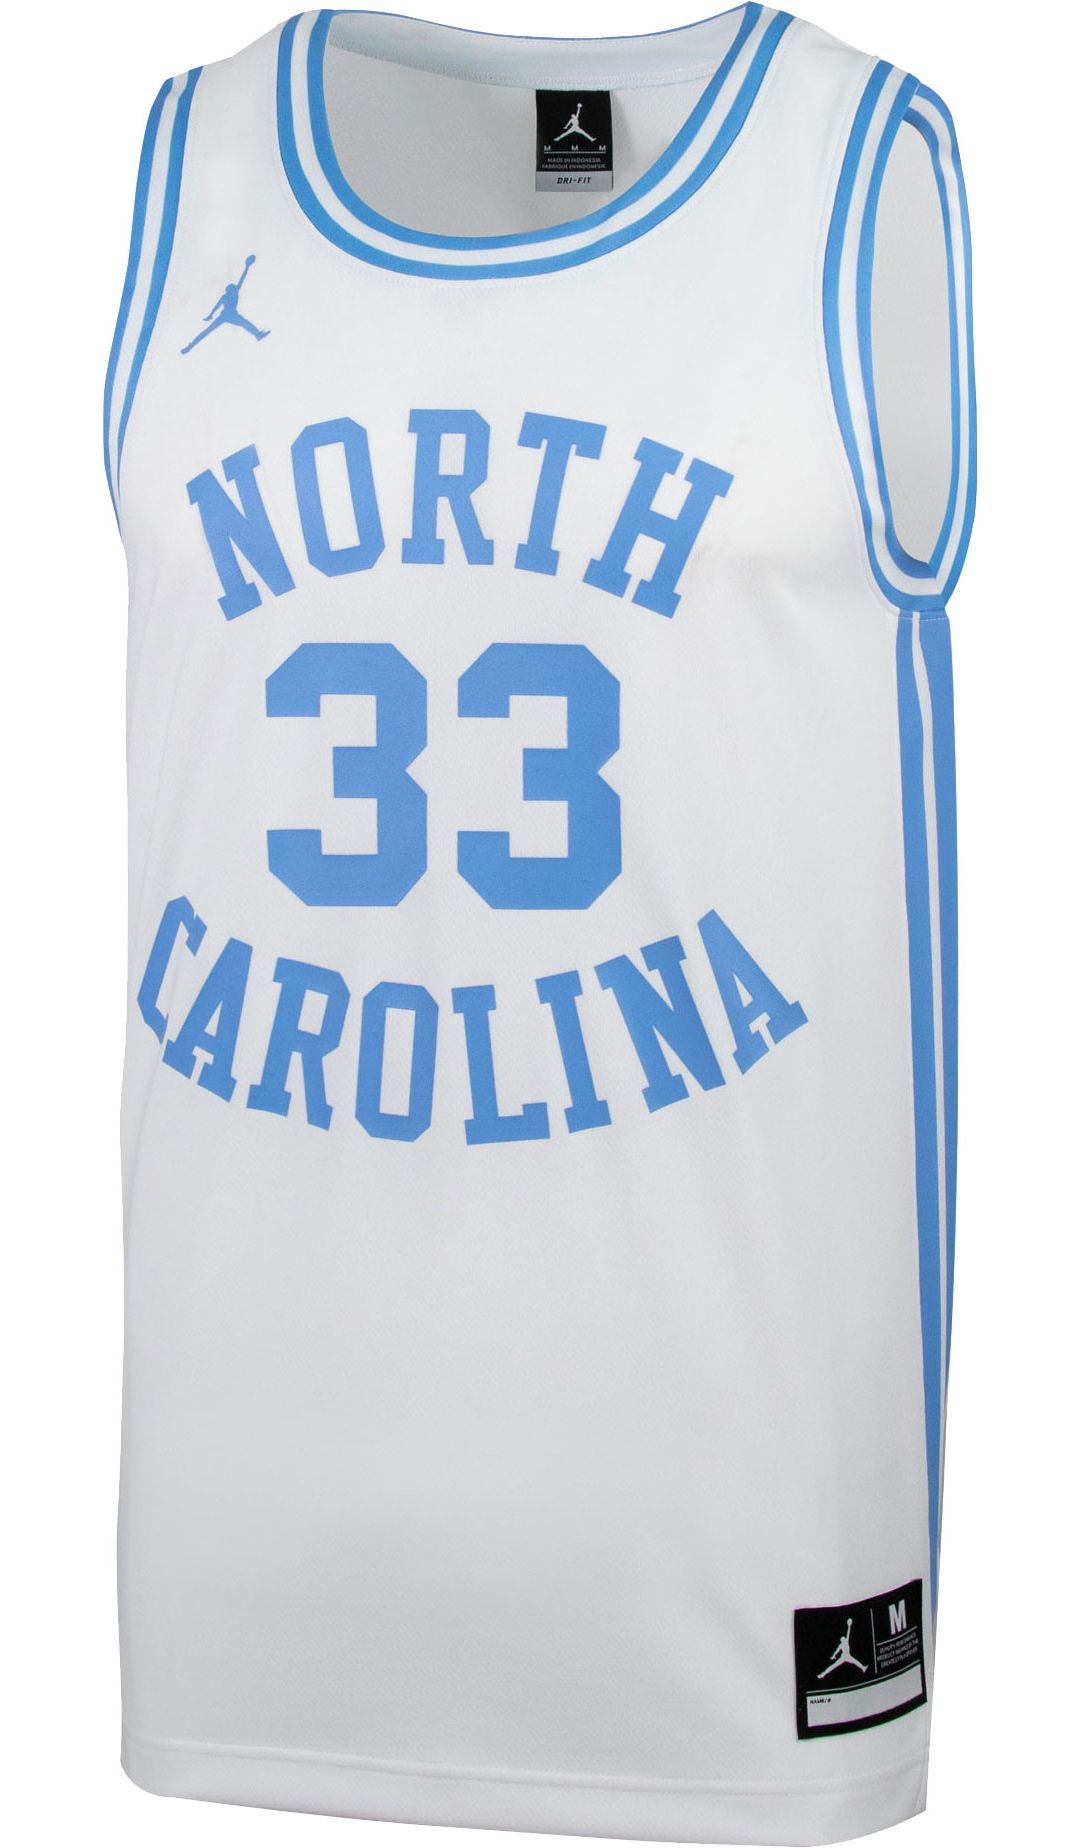 huge discount c3ecb dfe6d Jordan Men s North Carolina Tar Heels  33 Retro Replica Basketball ...